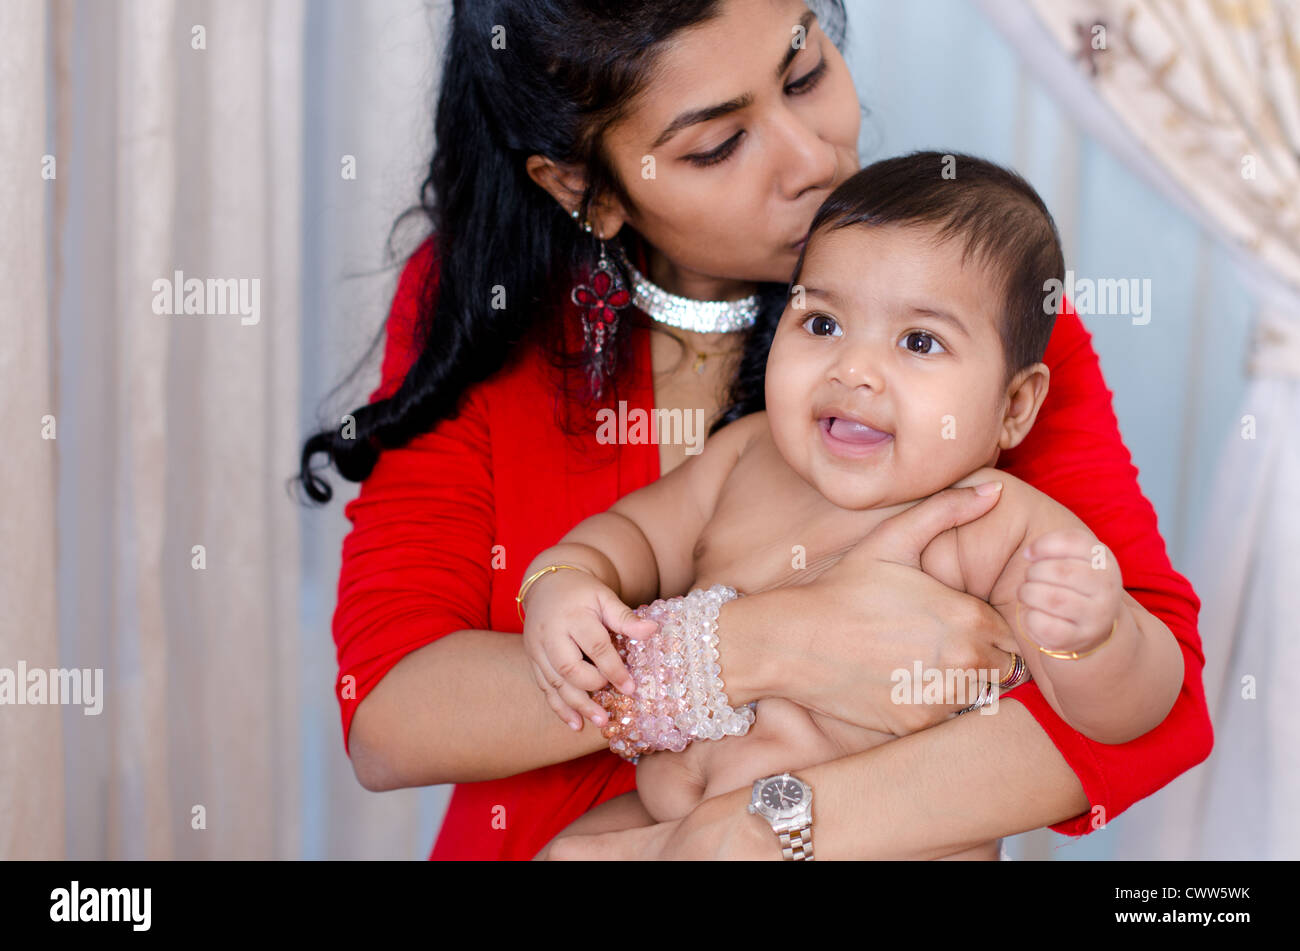 Indian madre baciando la sua bambina, interni Immagini Stock